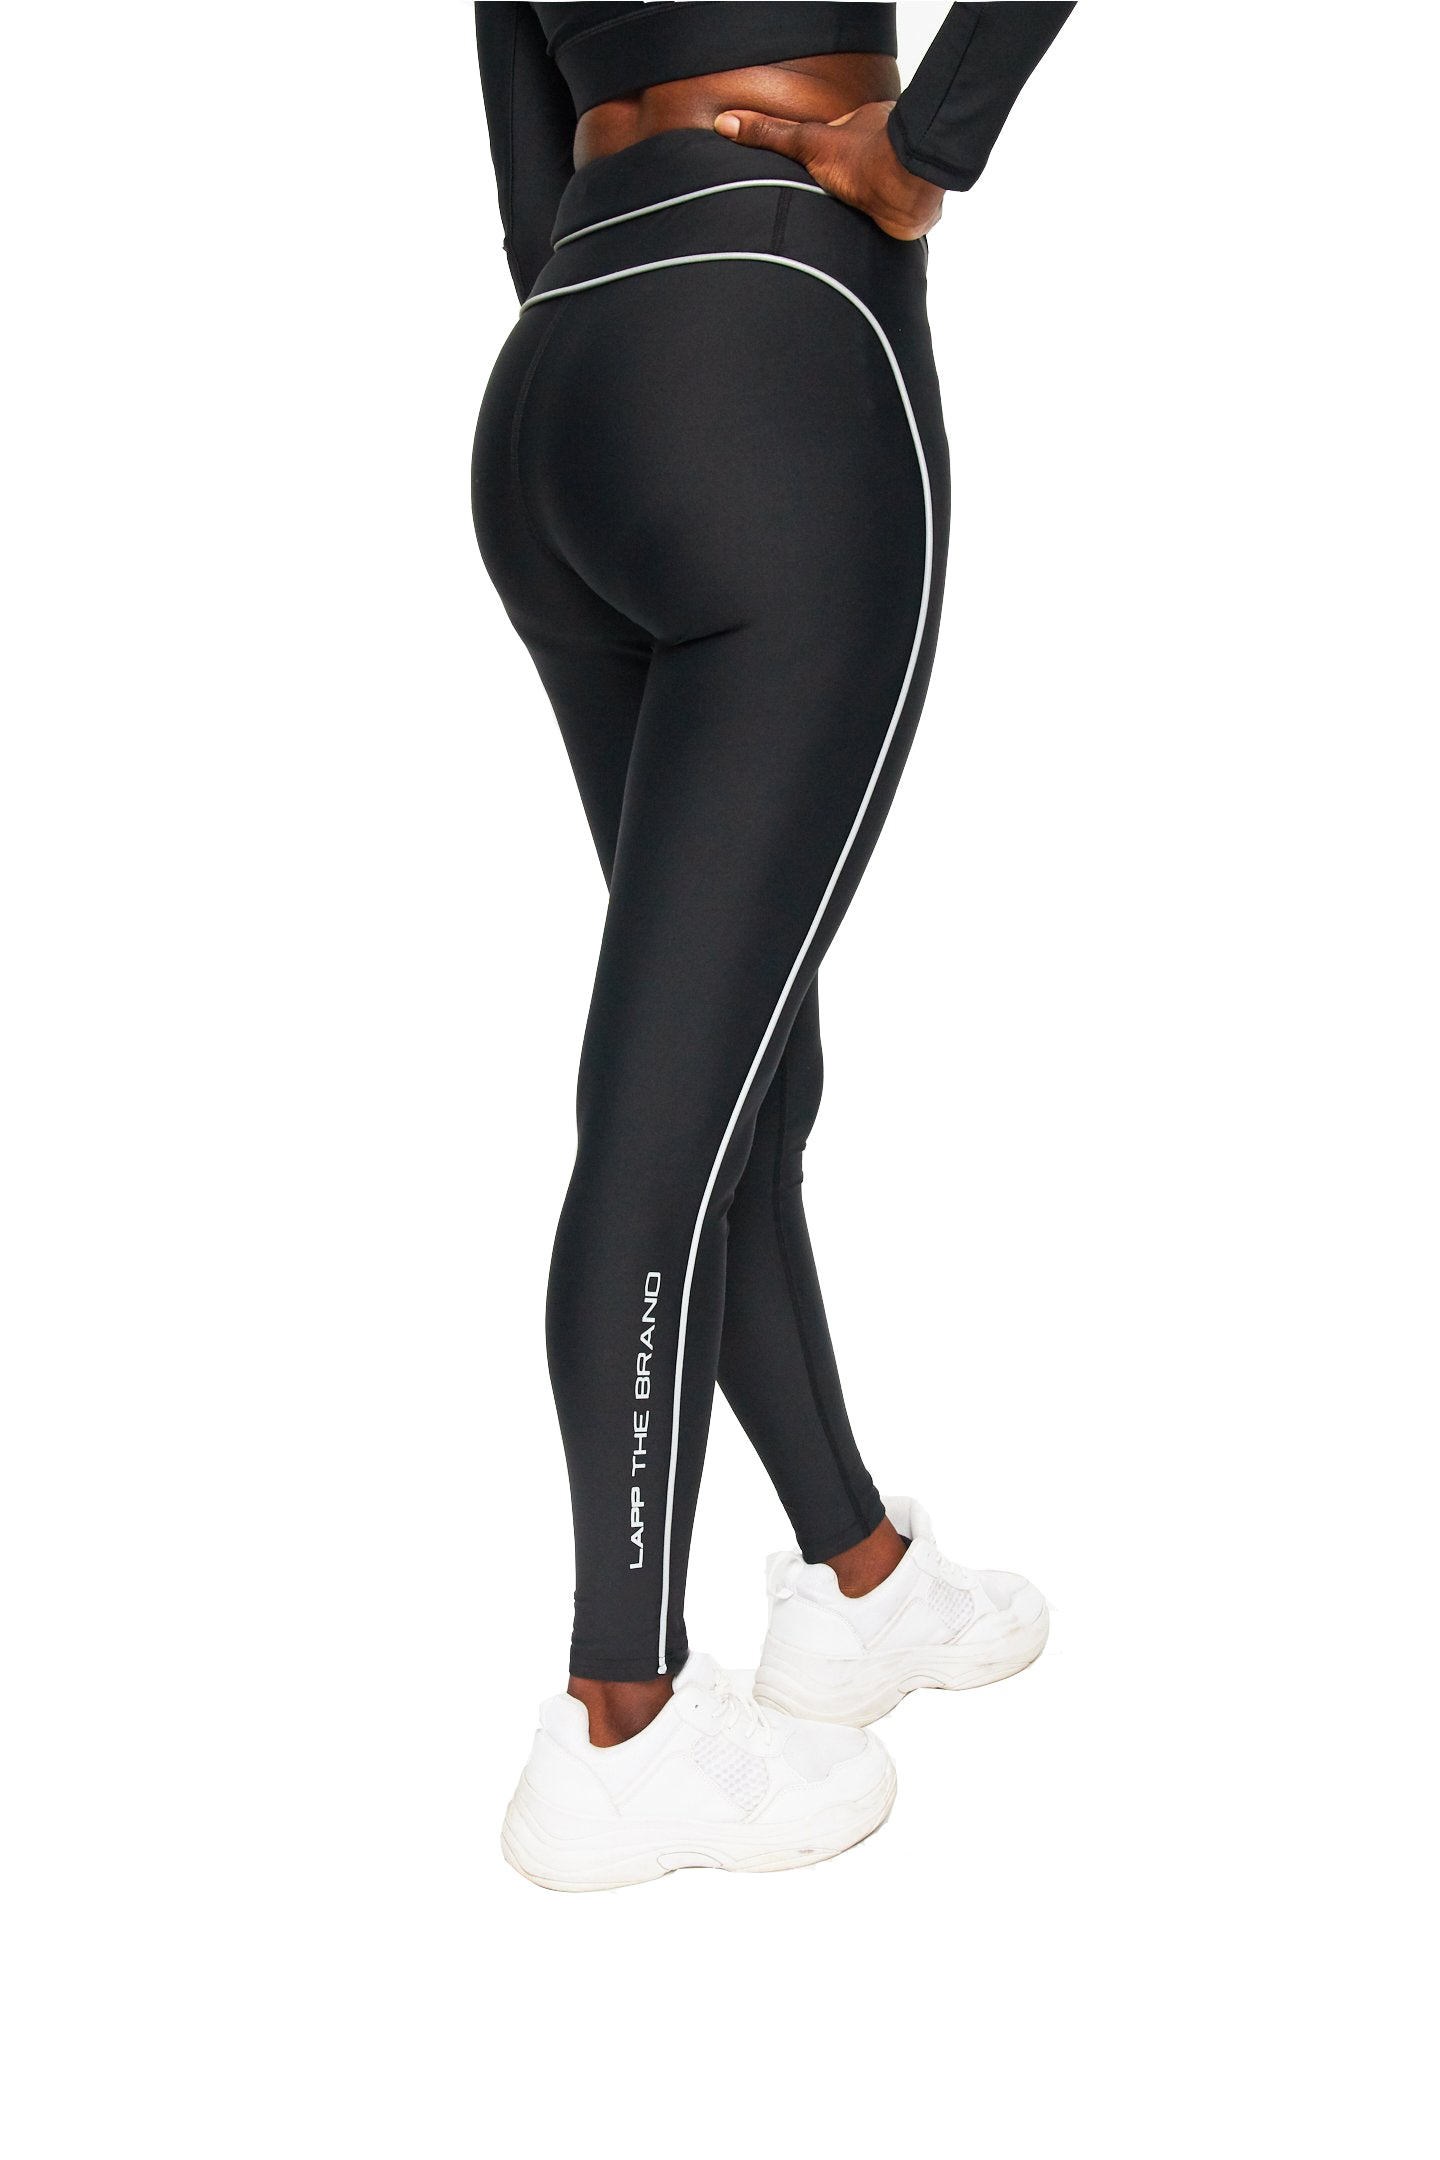 V front compression legging [3m/ black]